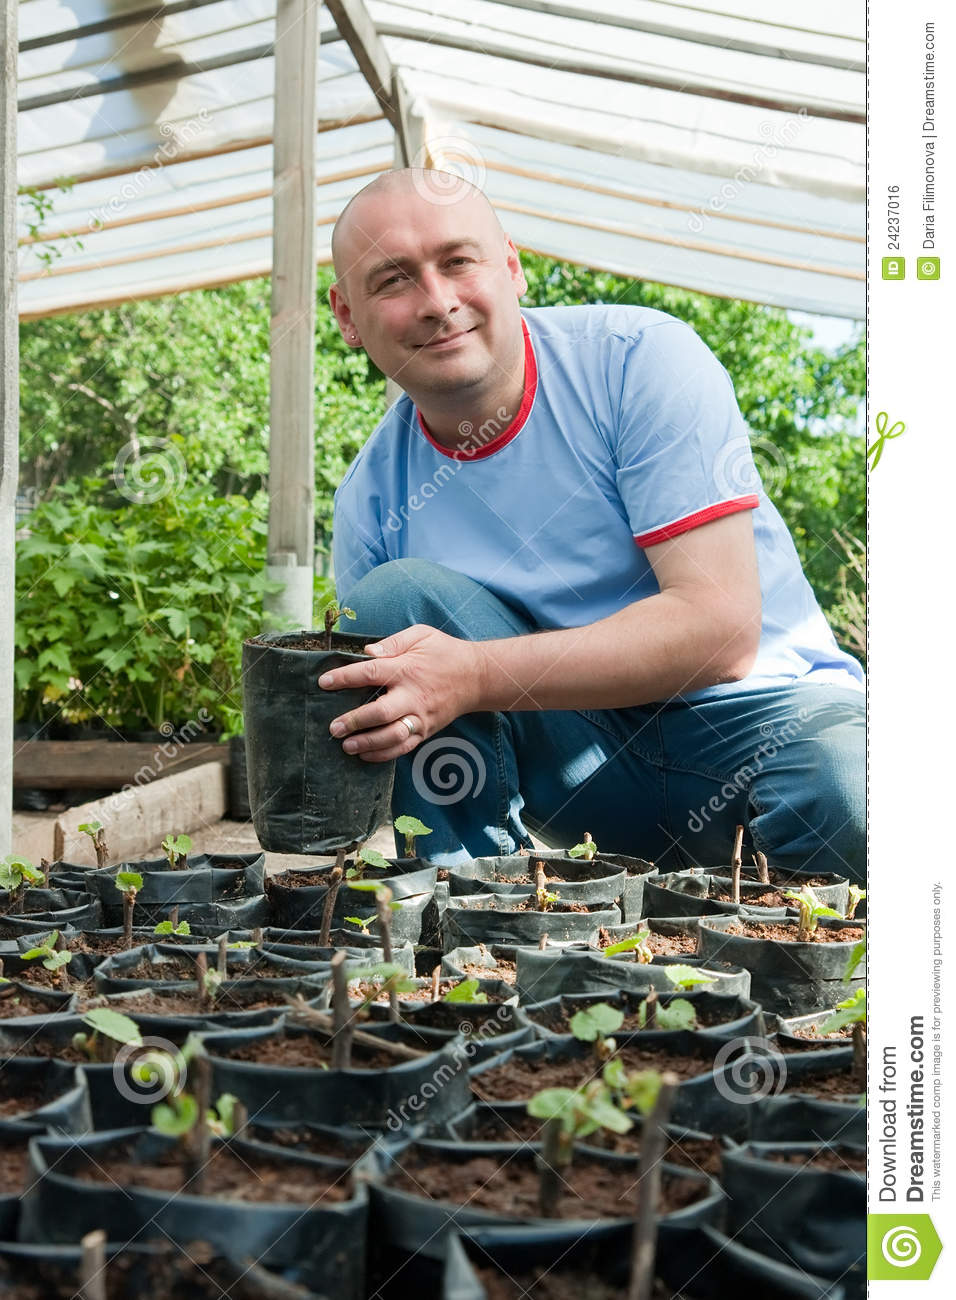 Gardener with seedlings